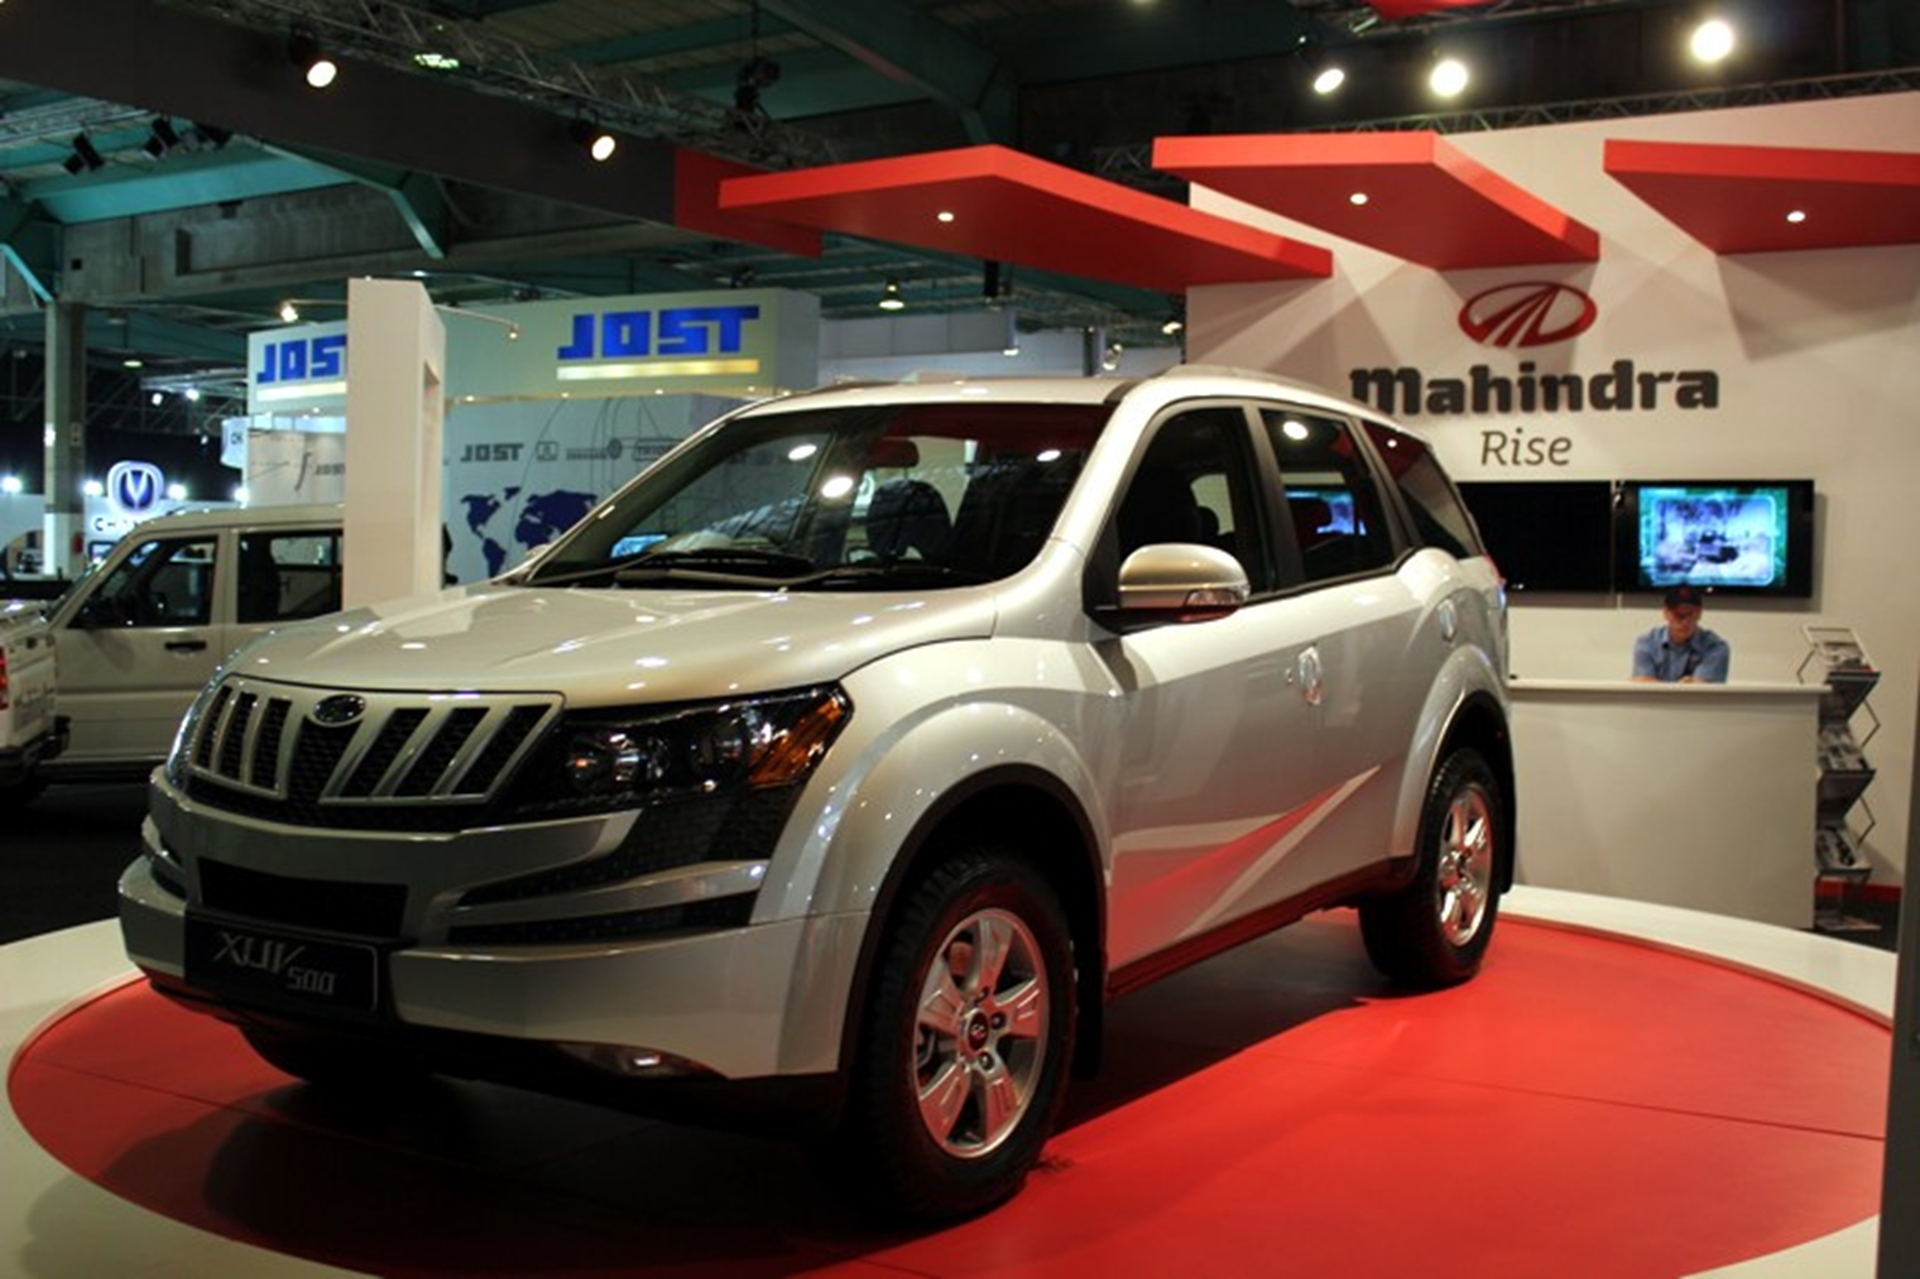 Mahindra Unveils Imposing New Suv At Johannesburg Motor Show